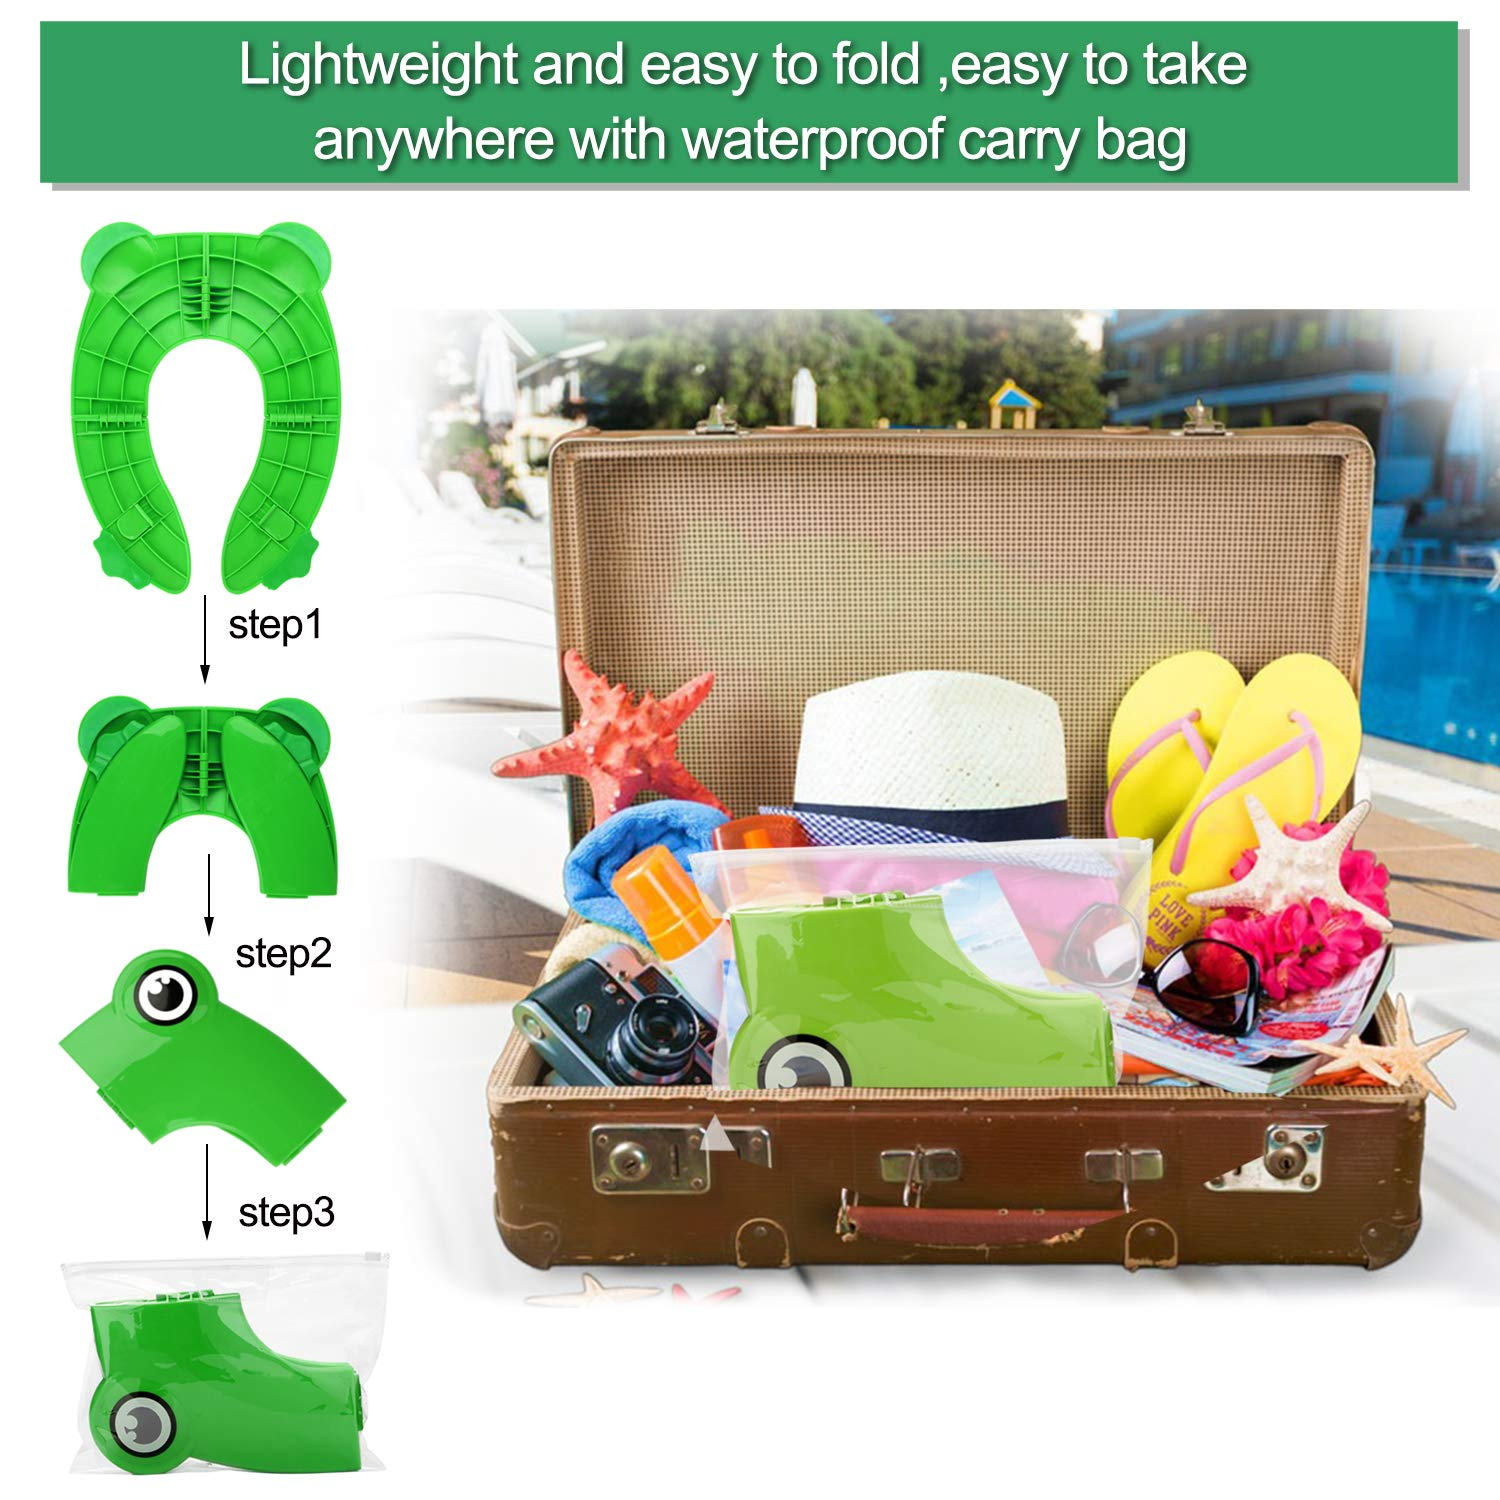 Toddlers and Kids Green Folding Potty Training Seat for Kids FITNATE Upgrade Portable Reusable Potty Training Seat Cover Large Non-Slip Pads With Carry Bags for Babies